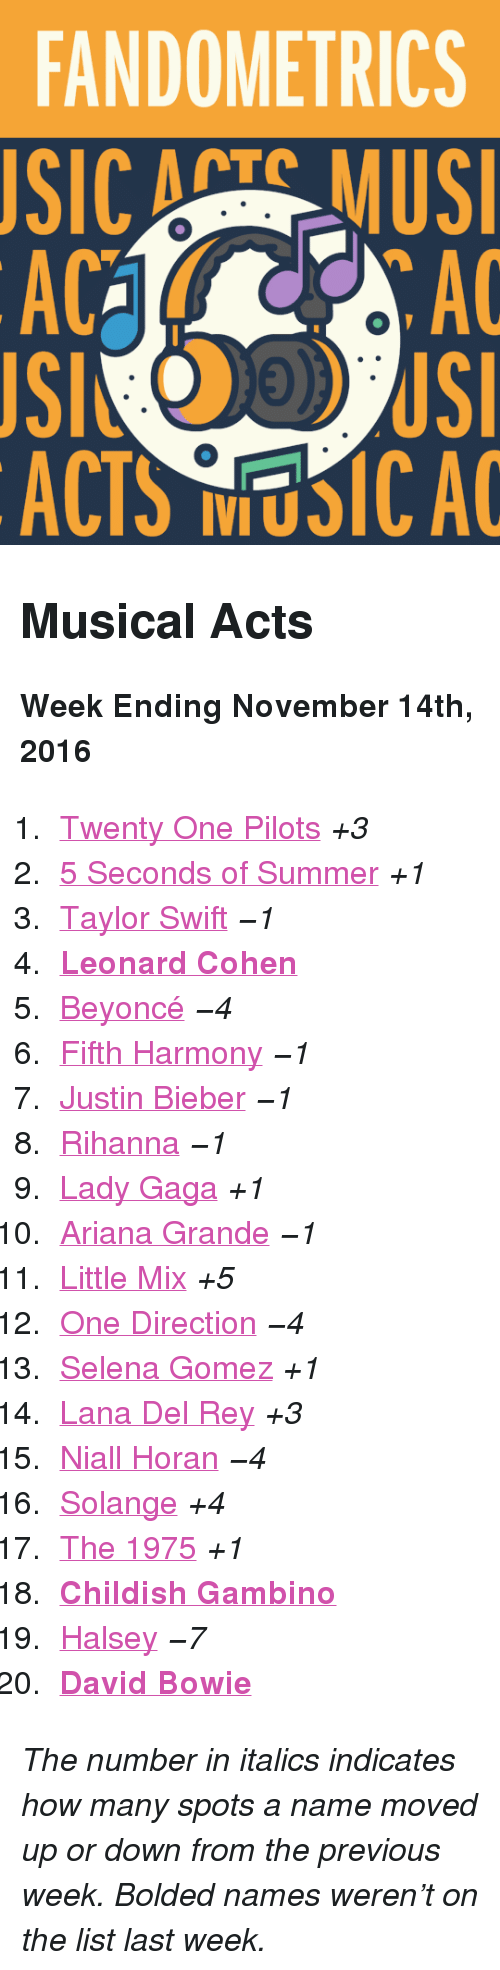 """leonard cohen: FANDOMETRICS  SIC ATS MUS  AC  AC  ACTS NUSICA <h2>Musical Acts</h2><p><b>Week Ending November 14th, 2016</b></p><ol><li><a href=""""http://www.tumblr.com/search/twenty%20one%20pilots"""">Twenty One Pilots</a><i>+3</i></li>  <li><a href=""""http://www.tumblr.com/search/5sos"""">5 Seconds of Summer</a><i>+1</i></li>  <li><a href=""""http://www.tumblr.com/search/taylor%20swift"""">Taylor Swift</a><i><i>−1</i></i></li>  <li><a href=""""http://www.tumblr.com/search/leonard%20cohen""""><b>Leonard Cohen</b></a></li>  <li><a href=""""http://www.tumblr.com/search/beyonce"""">Beyoncé</a><i><i>−4</i></i></li>  <li><a href=""""http://www.tumblr.com/search/fifth%20harmony"""">Fifth Harmony</a><i><i>−1</i></i></li>  <li><a href=""""http://www.tumblr.com/search/justin%20bieber"""">Justin Bieber</a><i><i>−1</i></i></li>  <li><a href=""""http://www.tumblr.com/search/rihanna"""">Rihanna</a><i><i>−1</i></i></li>  <li><a href=""""http://www.tumblr.com/search/lady%20gaga"""">Lady Gaga</a><i>+1</i></li>  <li><a href=""""http://www.tumblr.com/search/ariana%20grande"""">Ariana Grande</a><i><i>−1</i></i></li>  <li><a href=""""http://www.tumblr.com/search/little%20mix"""">Little Mix</a><i>+5</i></li>  <li><a href=""""http://www.tumblr.com/search/one%20direction"""">One Direction</a><i><i>−4</i></i></li>  <li><a href=""""http://www.tumblr.com/search/selena%20gomez"""">Selena Gomez</a><i>+1</i></li>  <li><a href=""""http://www.tumblr.com/search/lana%20del%20rey"""">Lana Del Rey</a><i>+3</i></li>  <li><a href=""""http://www.tumblr.com/search/niall%20horan"""">Niall Horan</a><i><i>−4</i></i></li>  <li><a href=""""http://www.tumblr.com/search/solange"""">Solange</a><i>+4</i></li>  <li><a href=""""http://www.tumblr.com/search/the%201975"""">The 1975</a><i>+1</i></li>  <li><a href=""""http://www.tumblr.com/search/childish%20gambino""""><b>Childish Gambino</b></a></li>  <li><a href=""""http://www.tumblr.com/search/halsey"""">Halsey</a><i><i>−7</i></i></li>  <li><a href=""""http://www.tumblr.com/search/david%20bowie""""><b>David Bowie</b></a></li></ol><p><i>The number in italics indicates how many spot"""